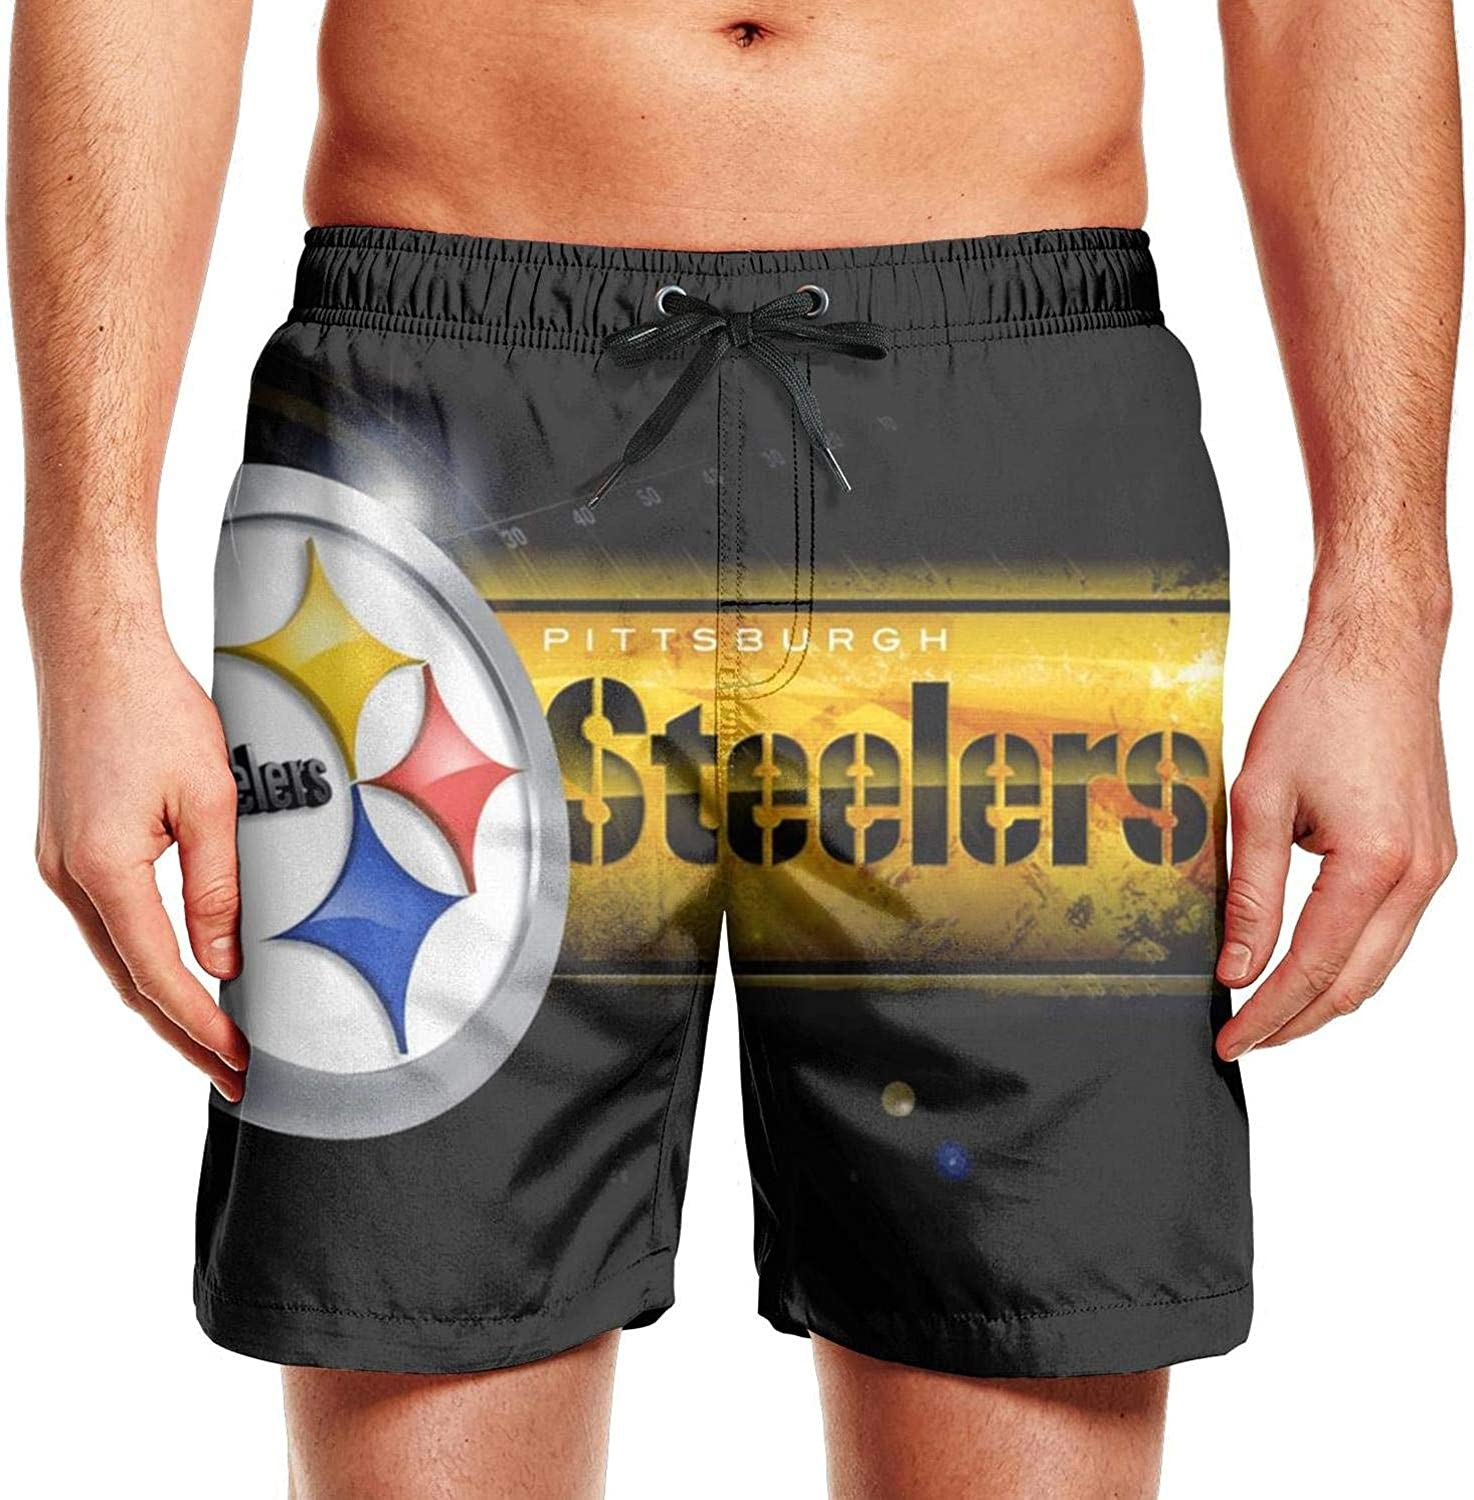 Pittsburgh Steelers Champion Fans Poster Mens Water Swimming Trunks Patriotic Shorts